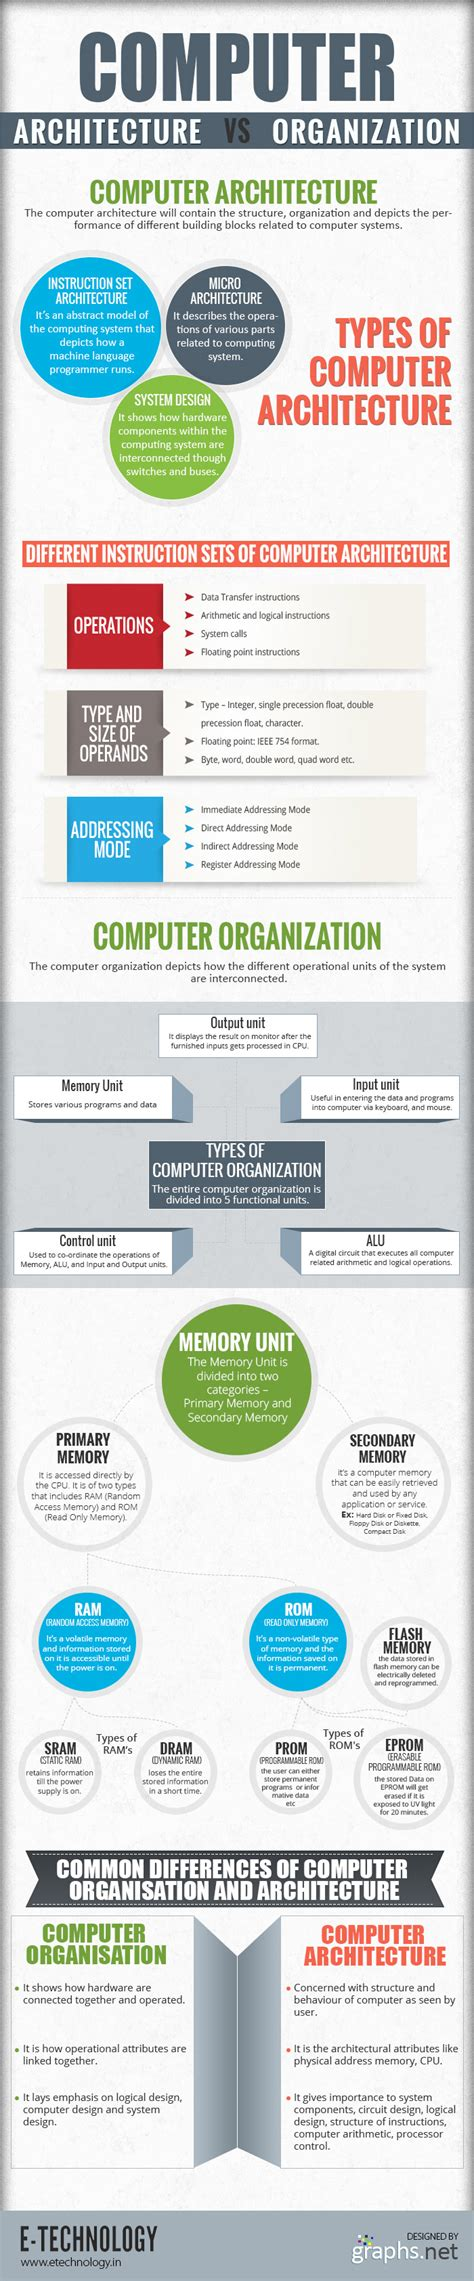 Computer Organization And Architecture 10ed how does computer organization differ from computer